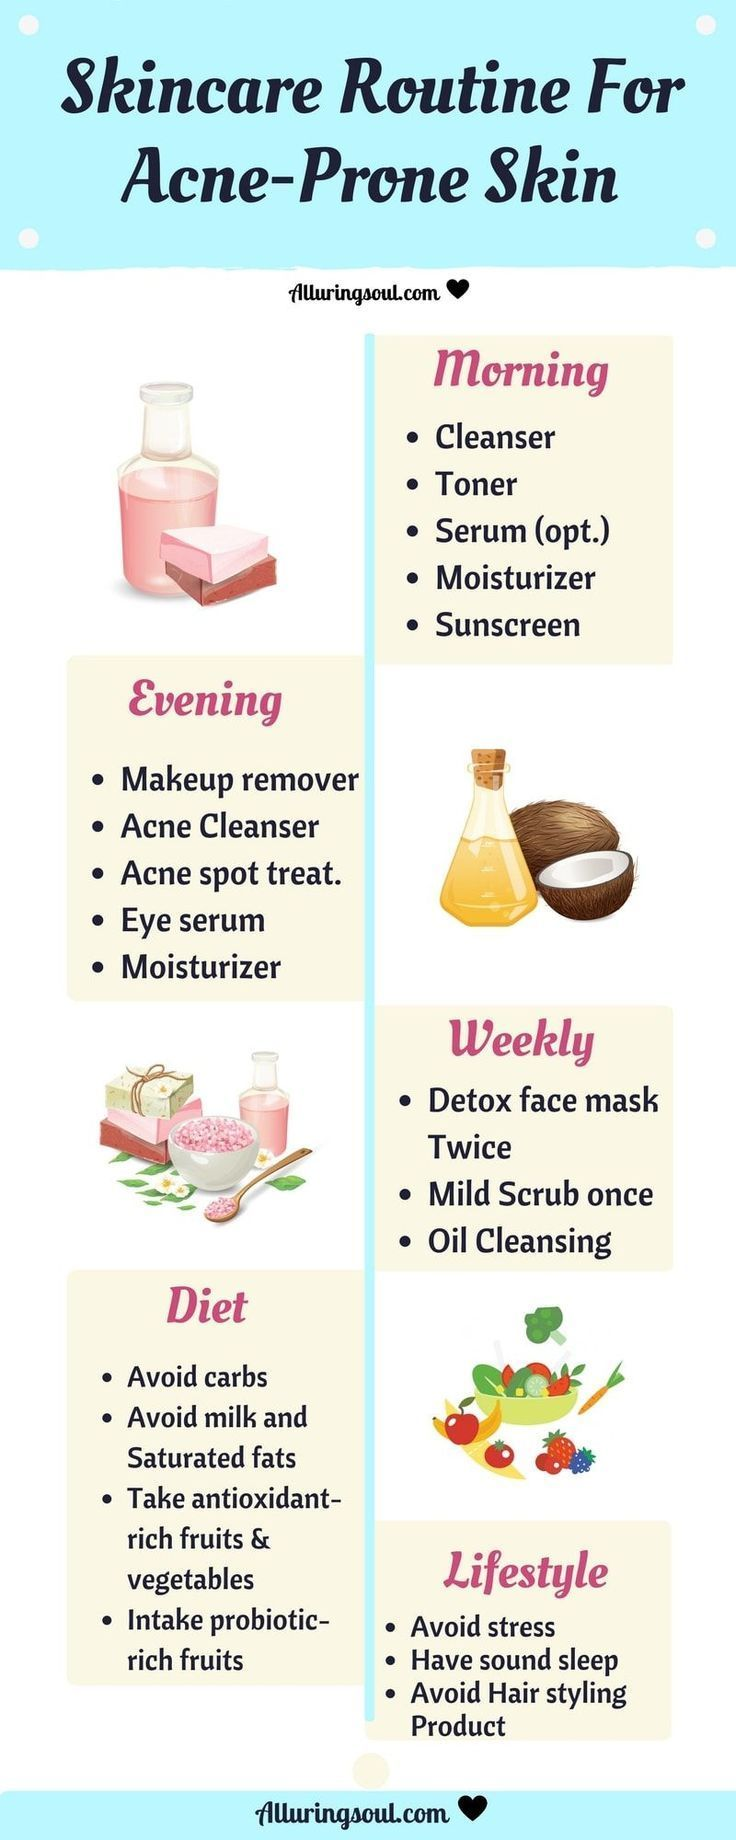 Quit Acne Using Natural Skin Care Guide For Acne Prone Skin And Give Your Skin Nutritional Food Through Nature And A Skin Care Guide Acne Prone Skin Acne Prone